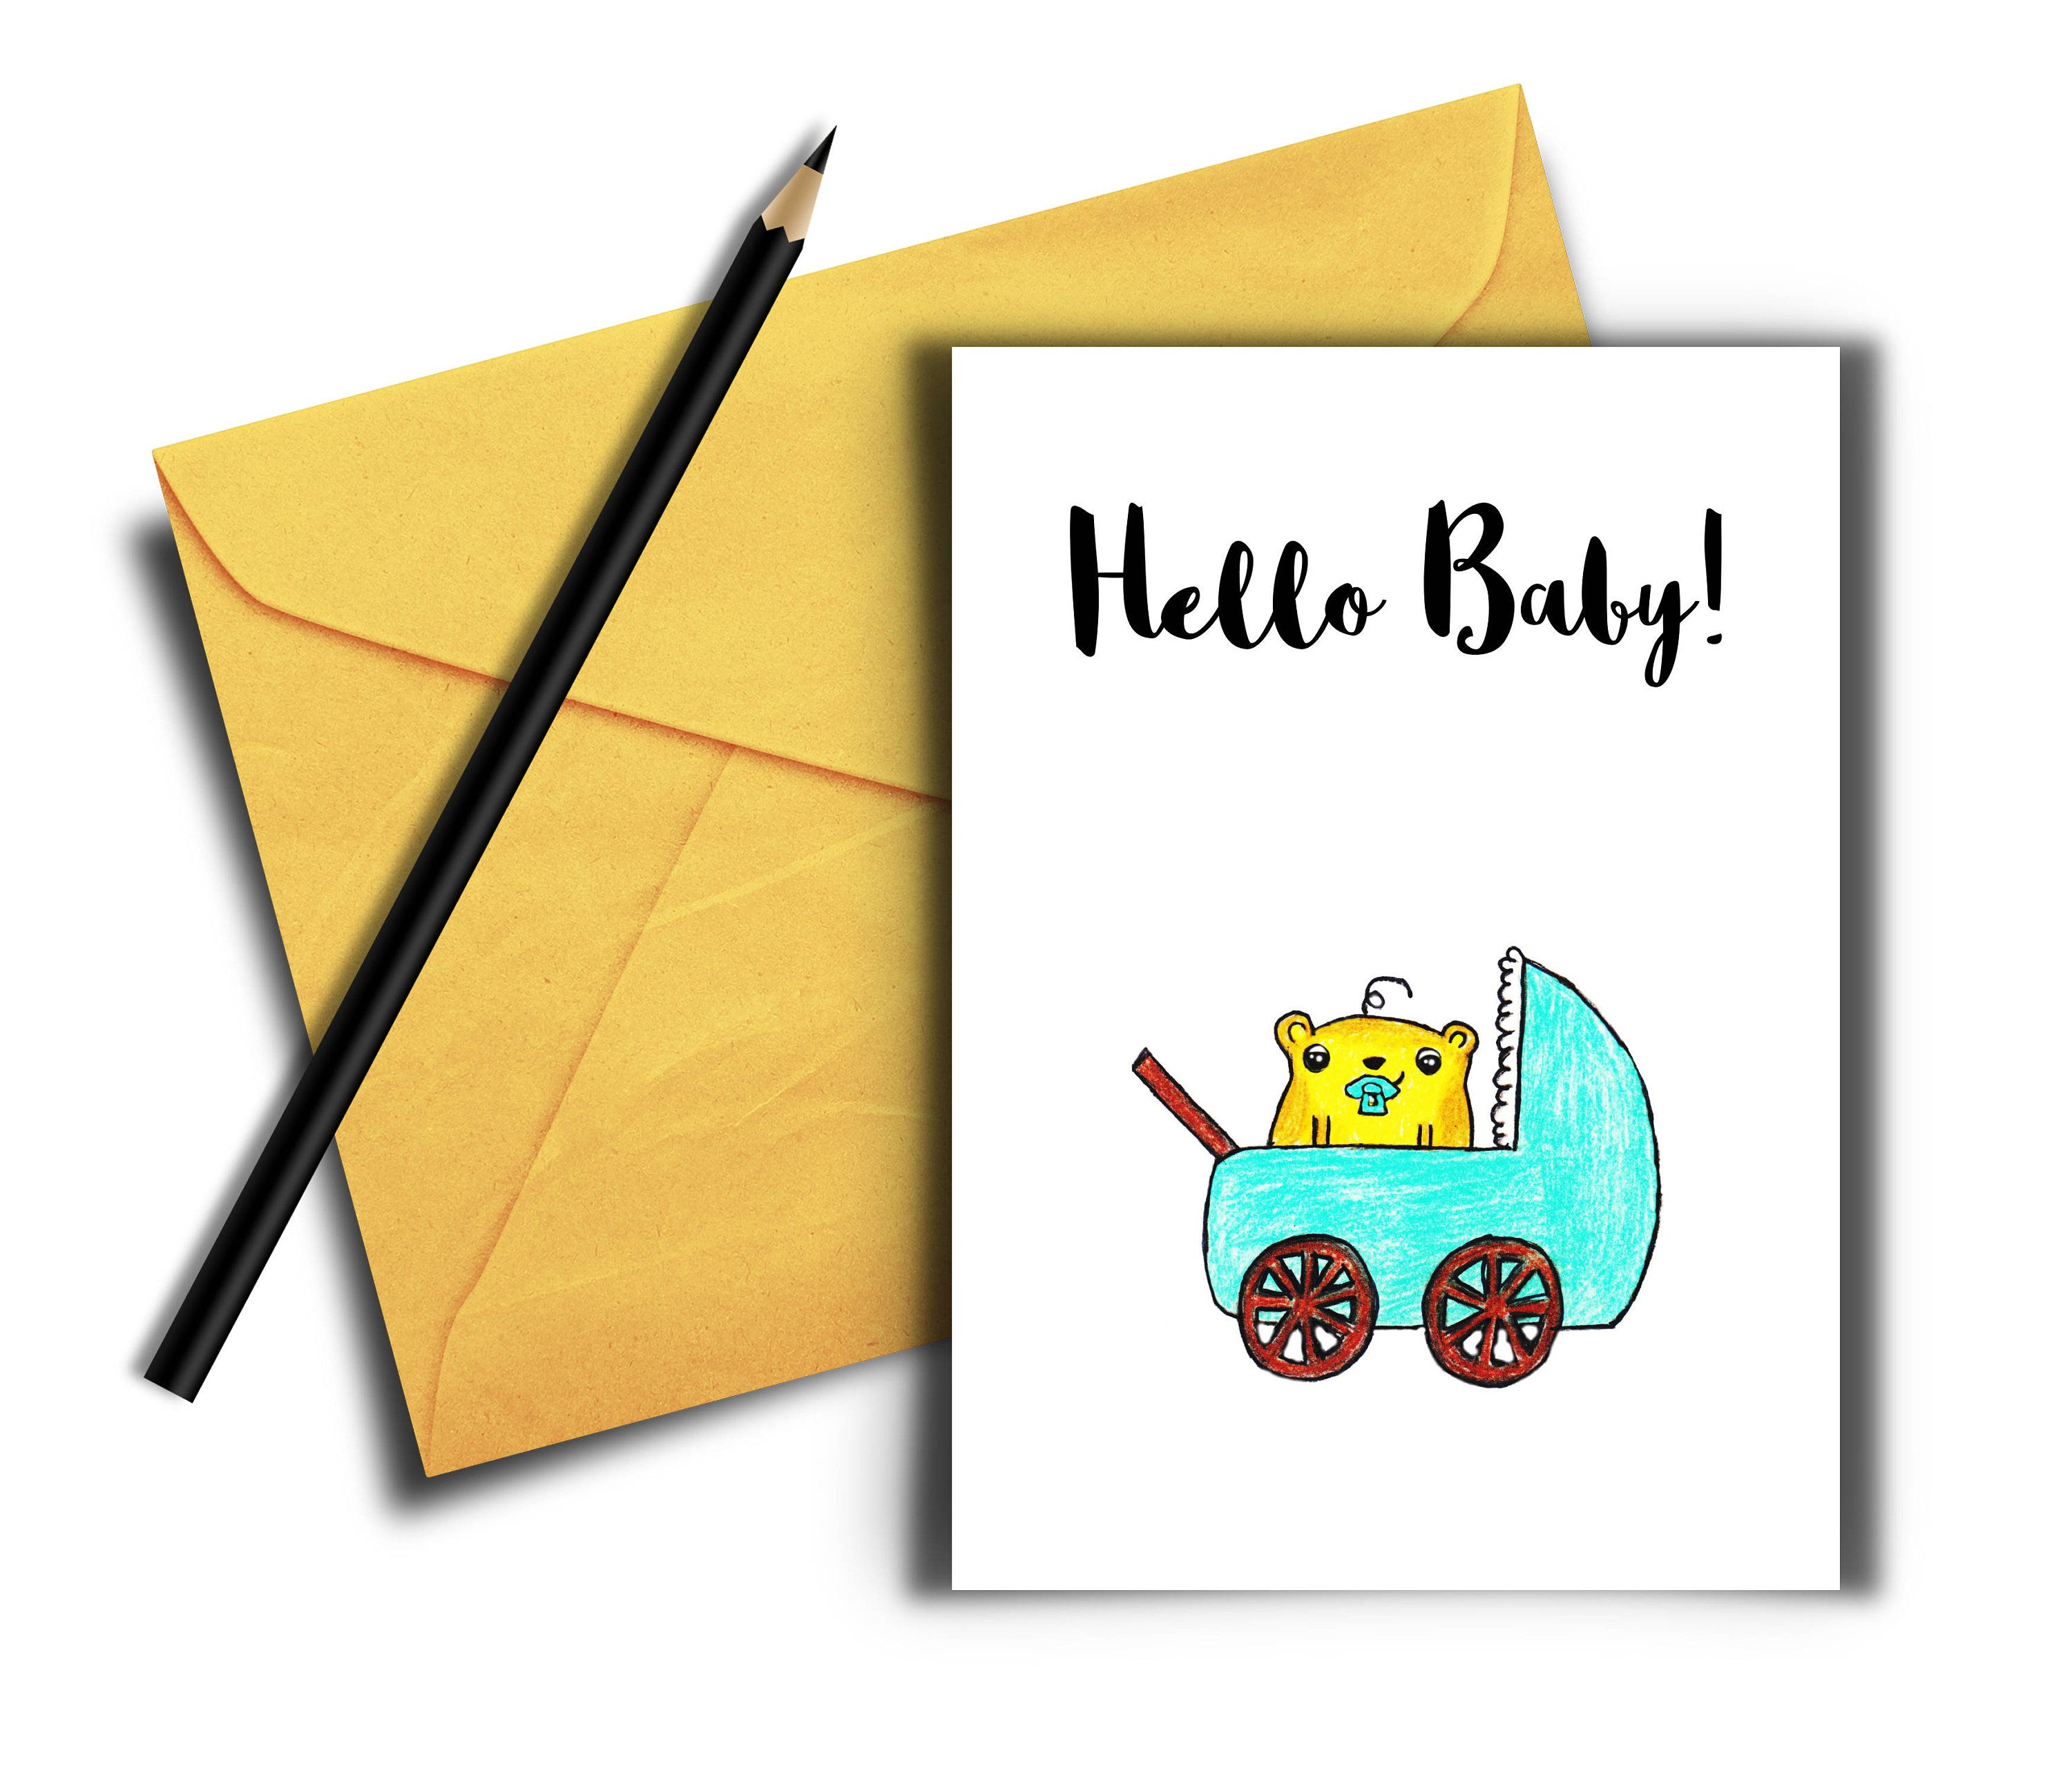 Hello Baby Card Welcome Baby Card Printable Card Digital Download